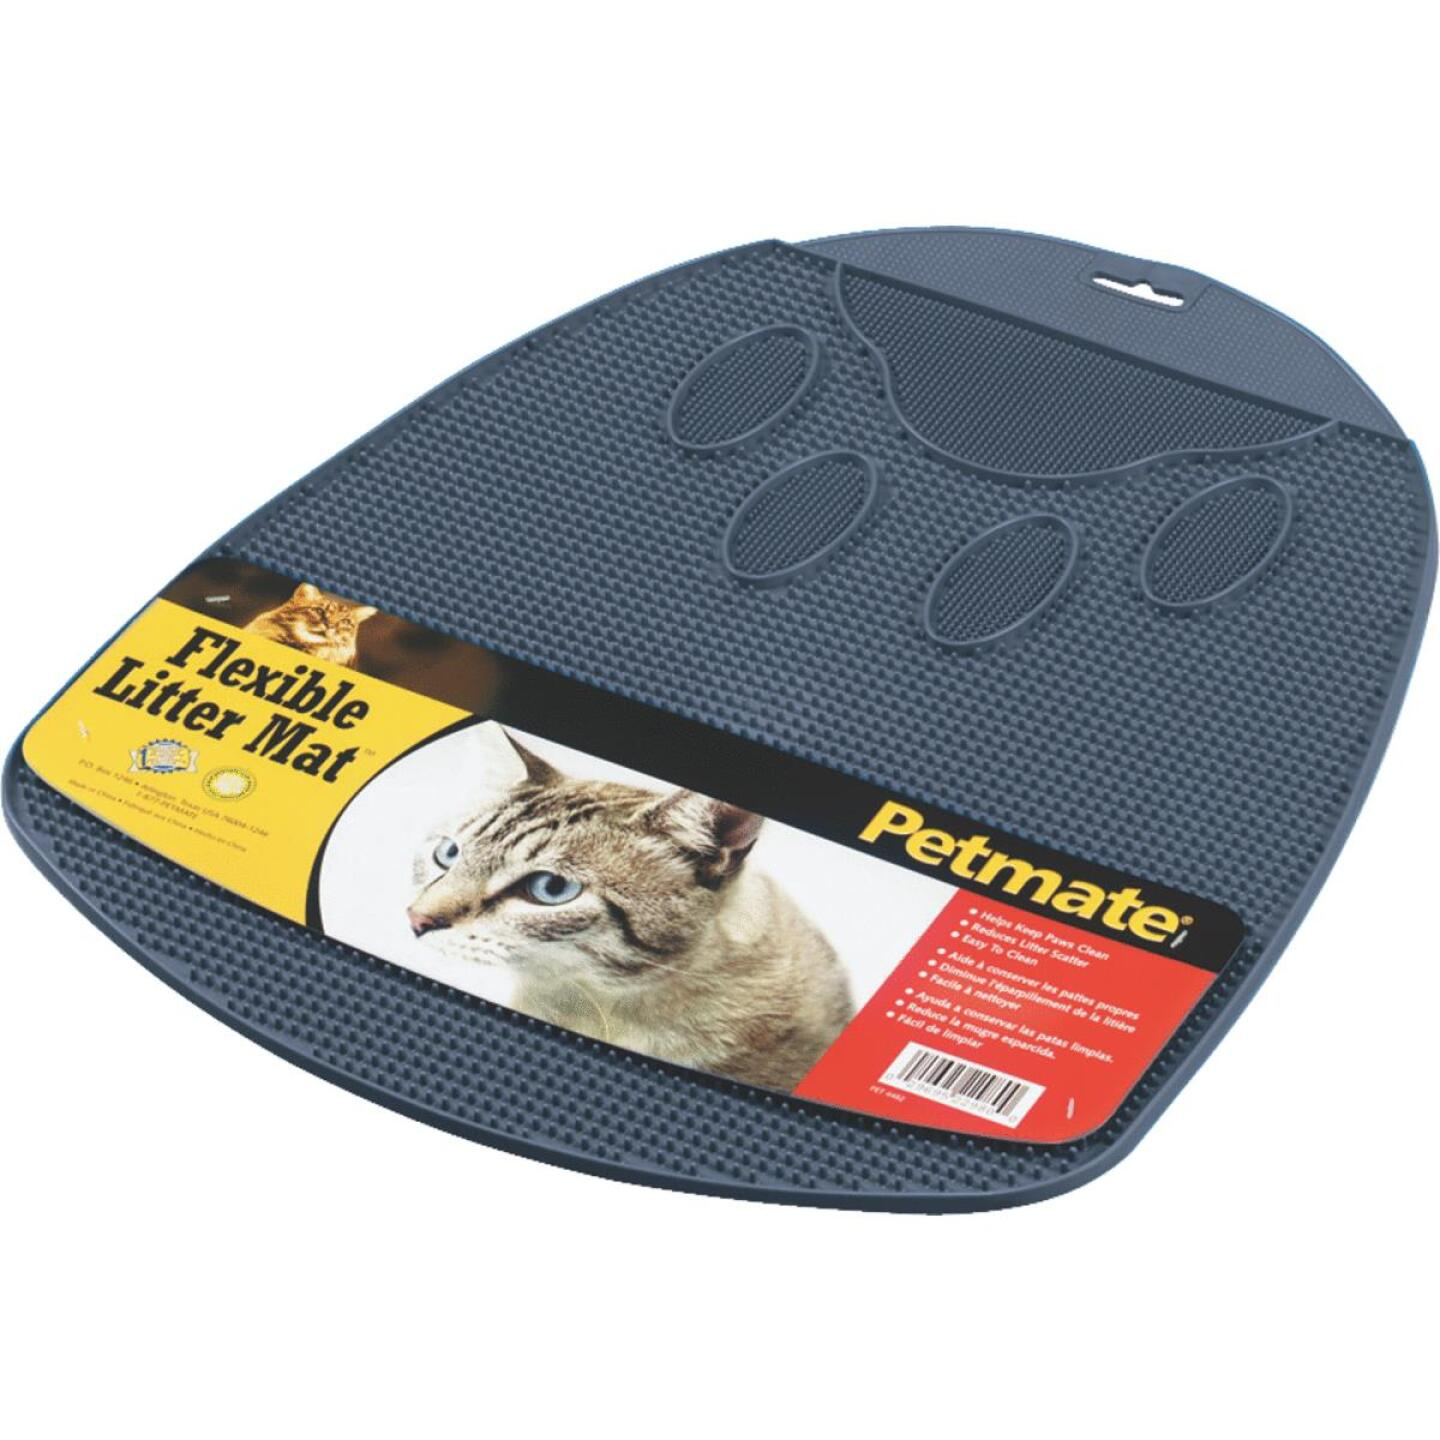 Petmate 13-1/2 In. x 14 In. x 1 In. Flexible Rubber Litter Mat Image 1